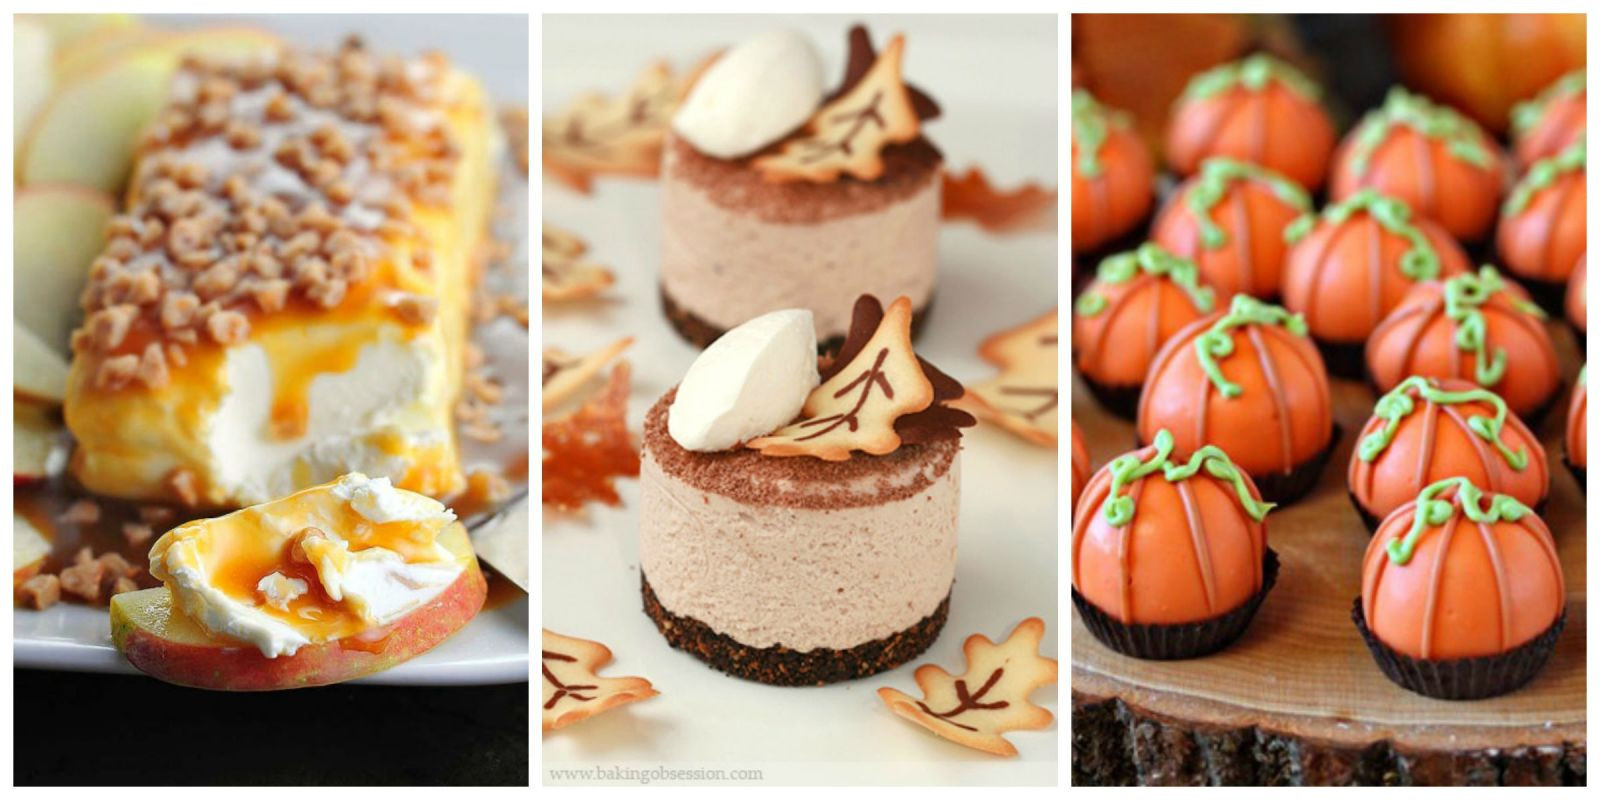 Fall Party Desserts  35 Easy Fall Dessert Recipes Best Treats for Autumn Parties